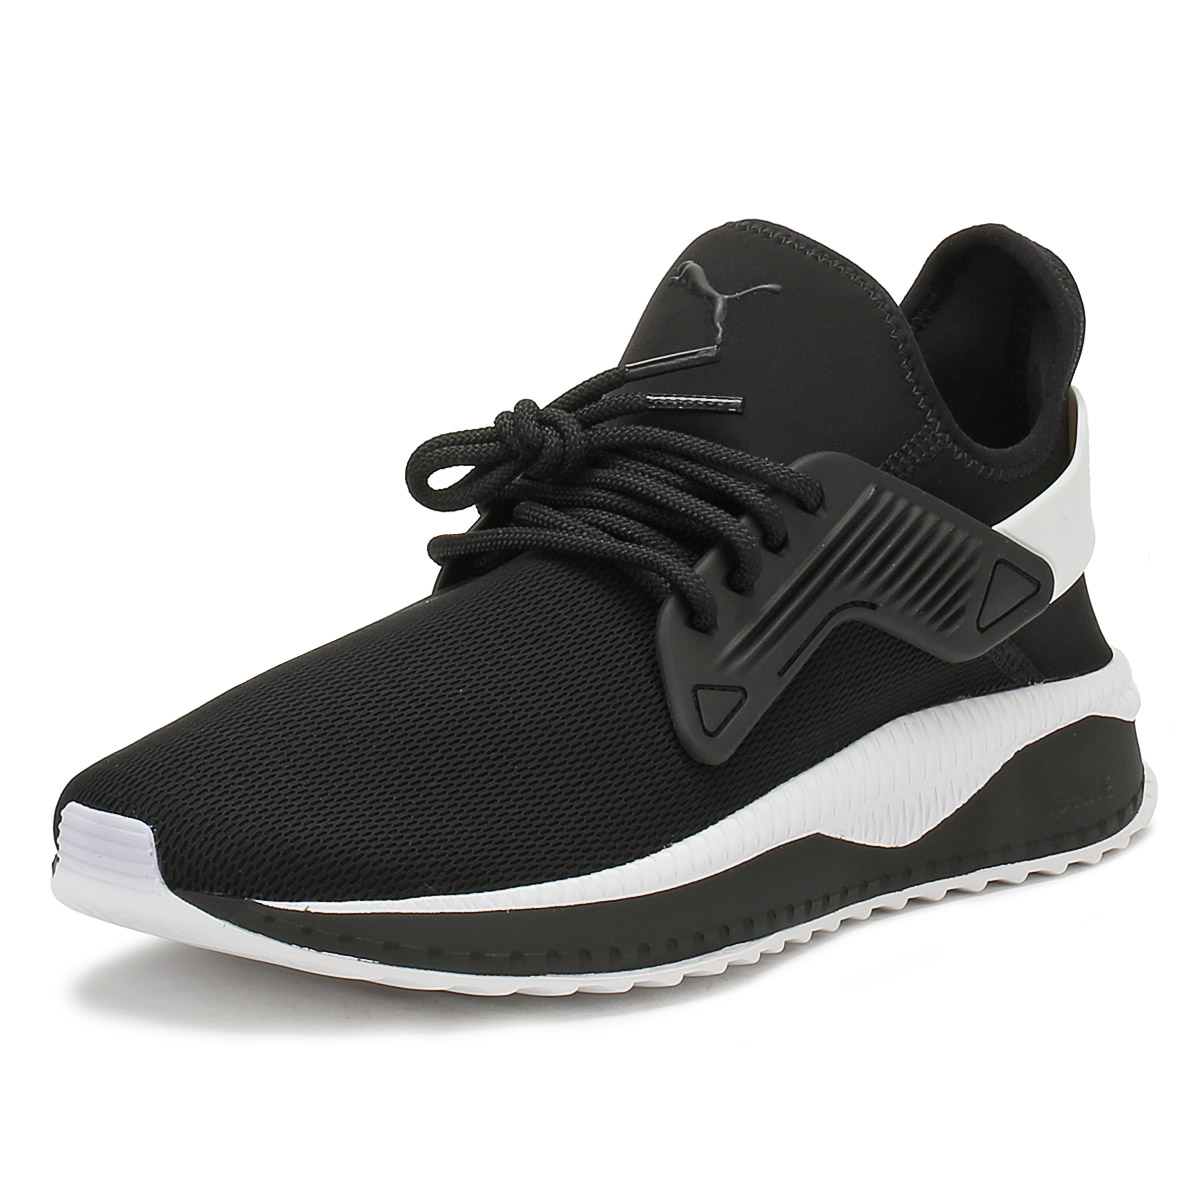 5225e7ca488 Details about PUMA Mens Black Tsugi Cage Trainers Lace Up Sport Casual Shoes